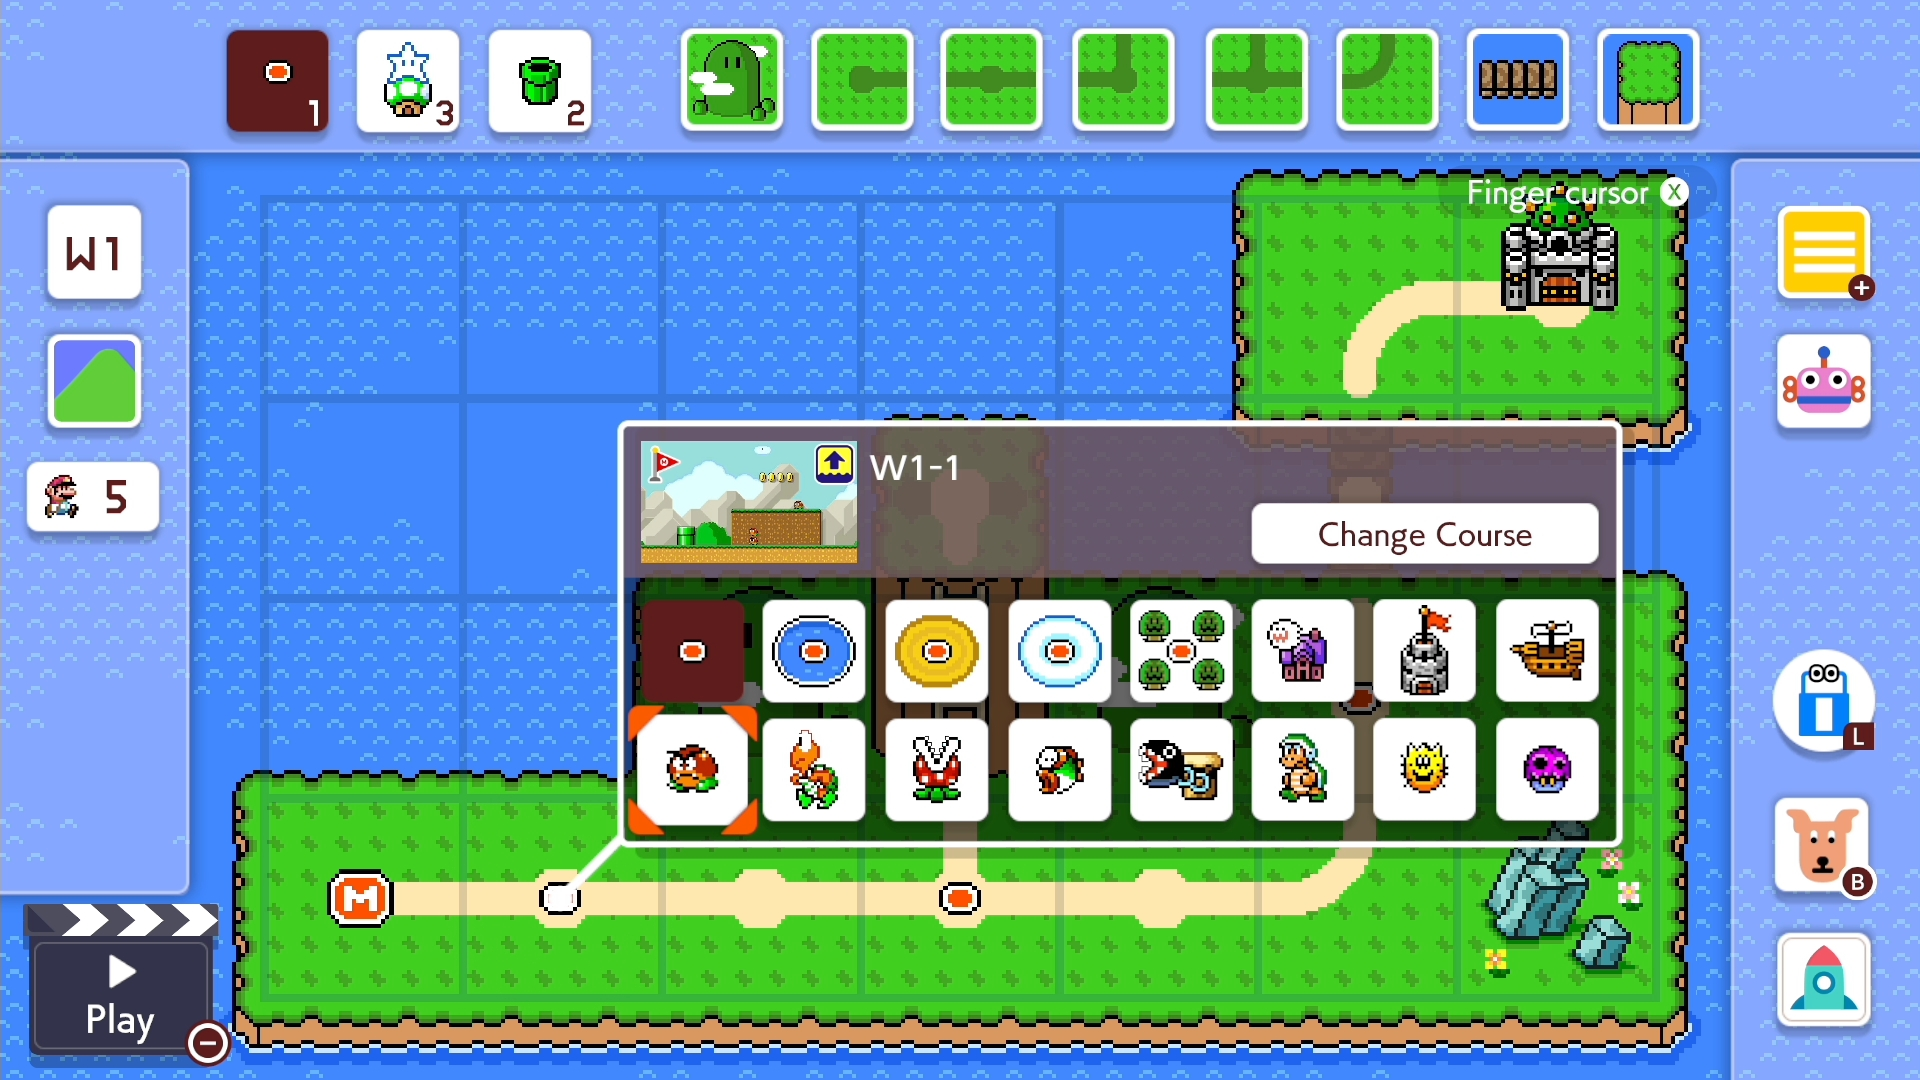 Nintendo News Free Final Update To Super Mario Maker 2 Adds World Building Mode And New Course Parts Business Wire